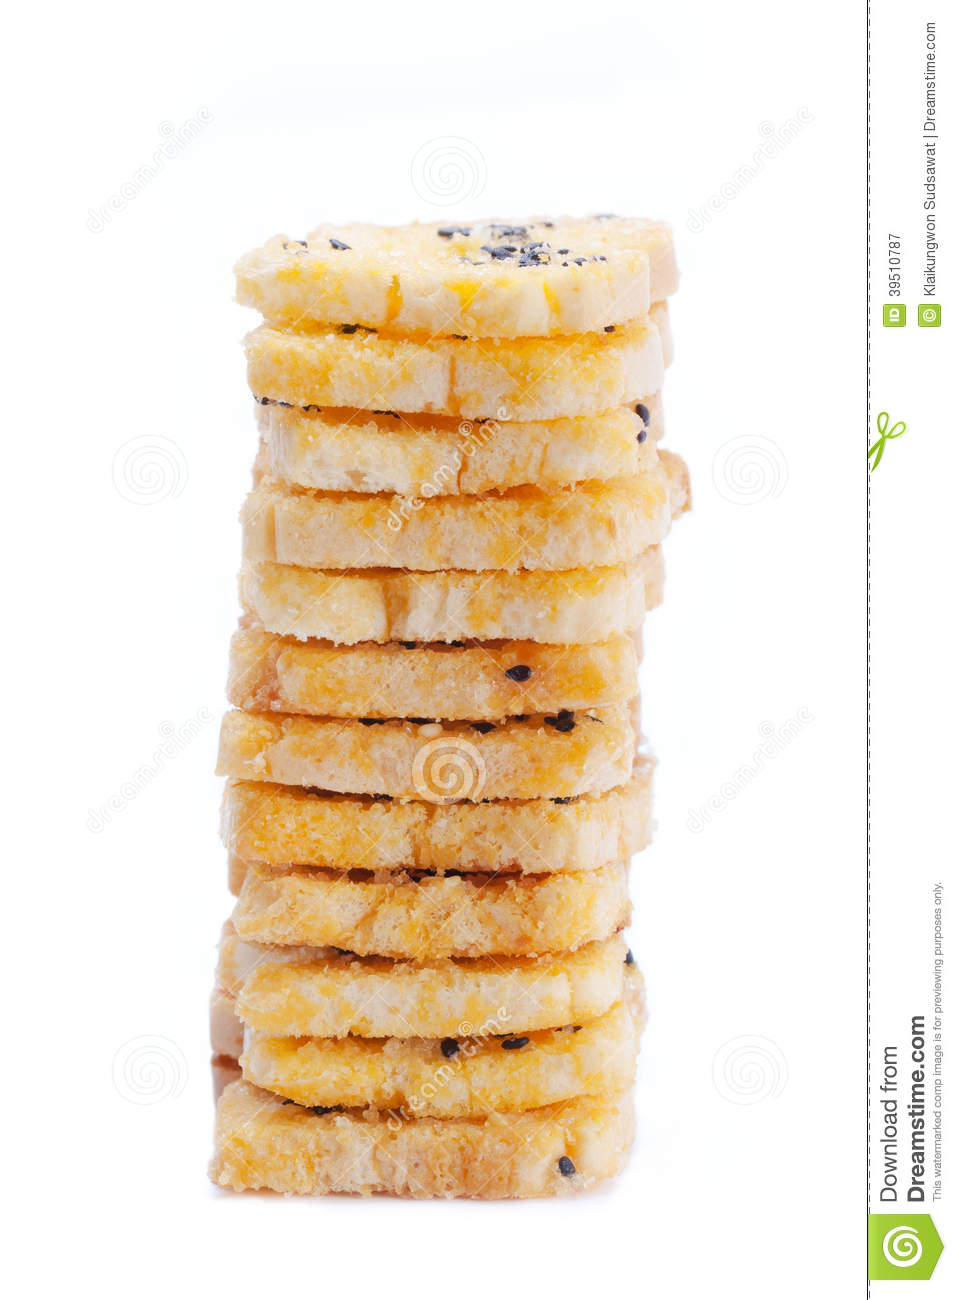 Baking toast with sugar and sesame stack on white background